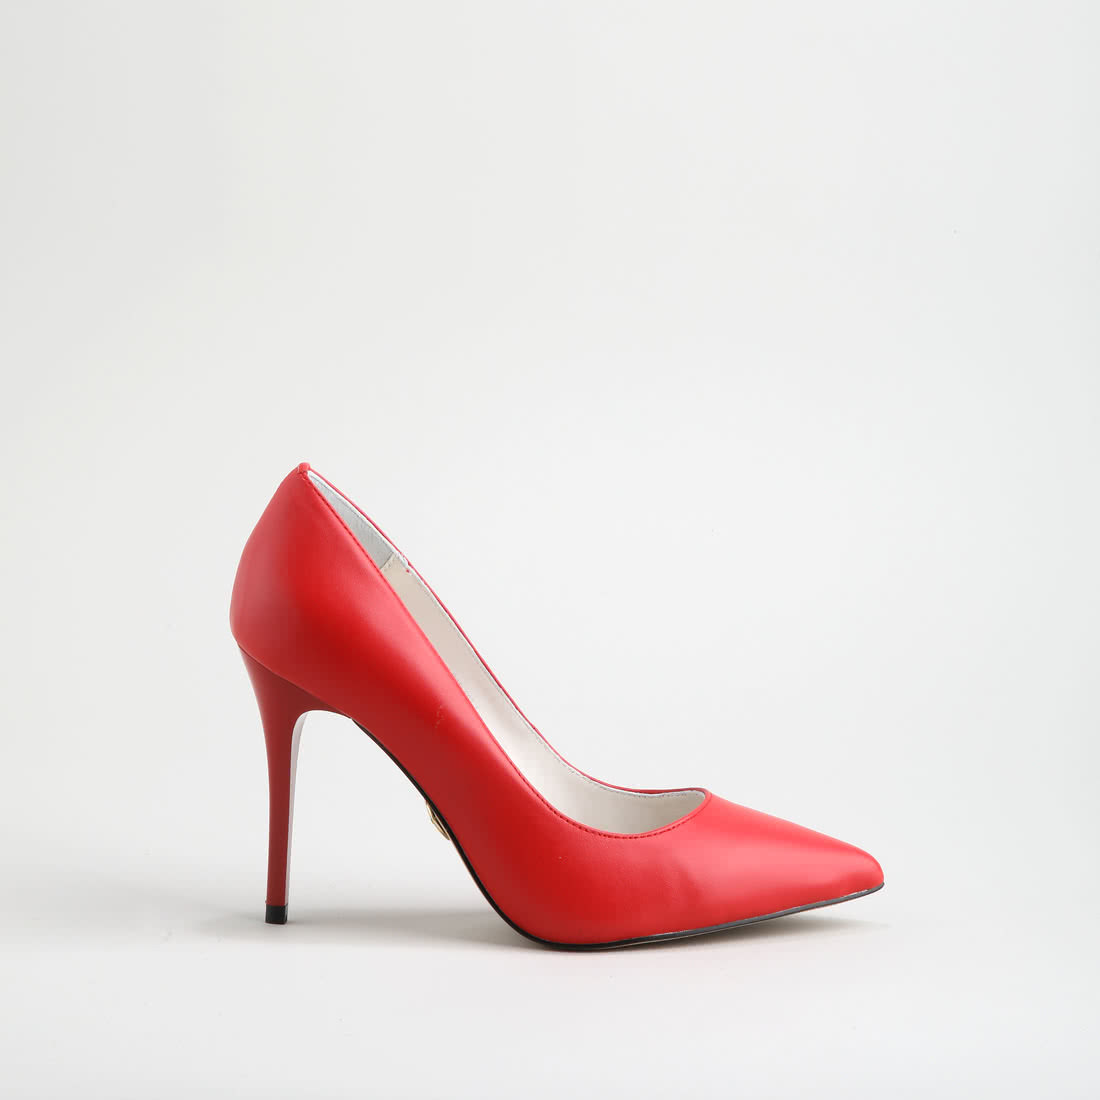 69f38b9623bc Buffalo pointy pumps leather 9 cm red buy online in BUFFALO Online ...